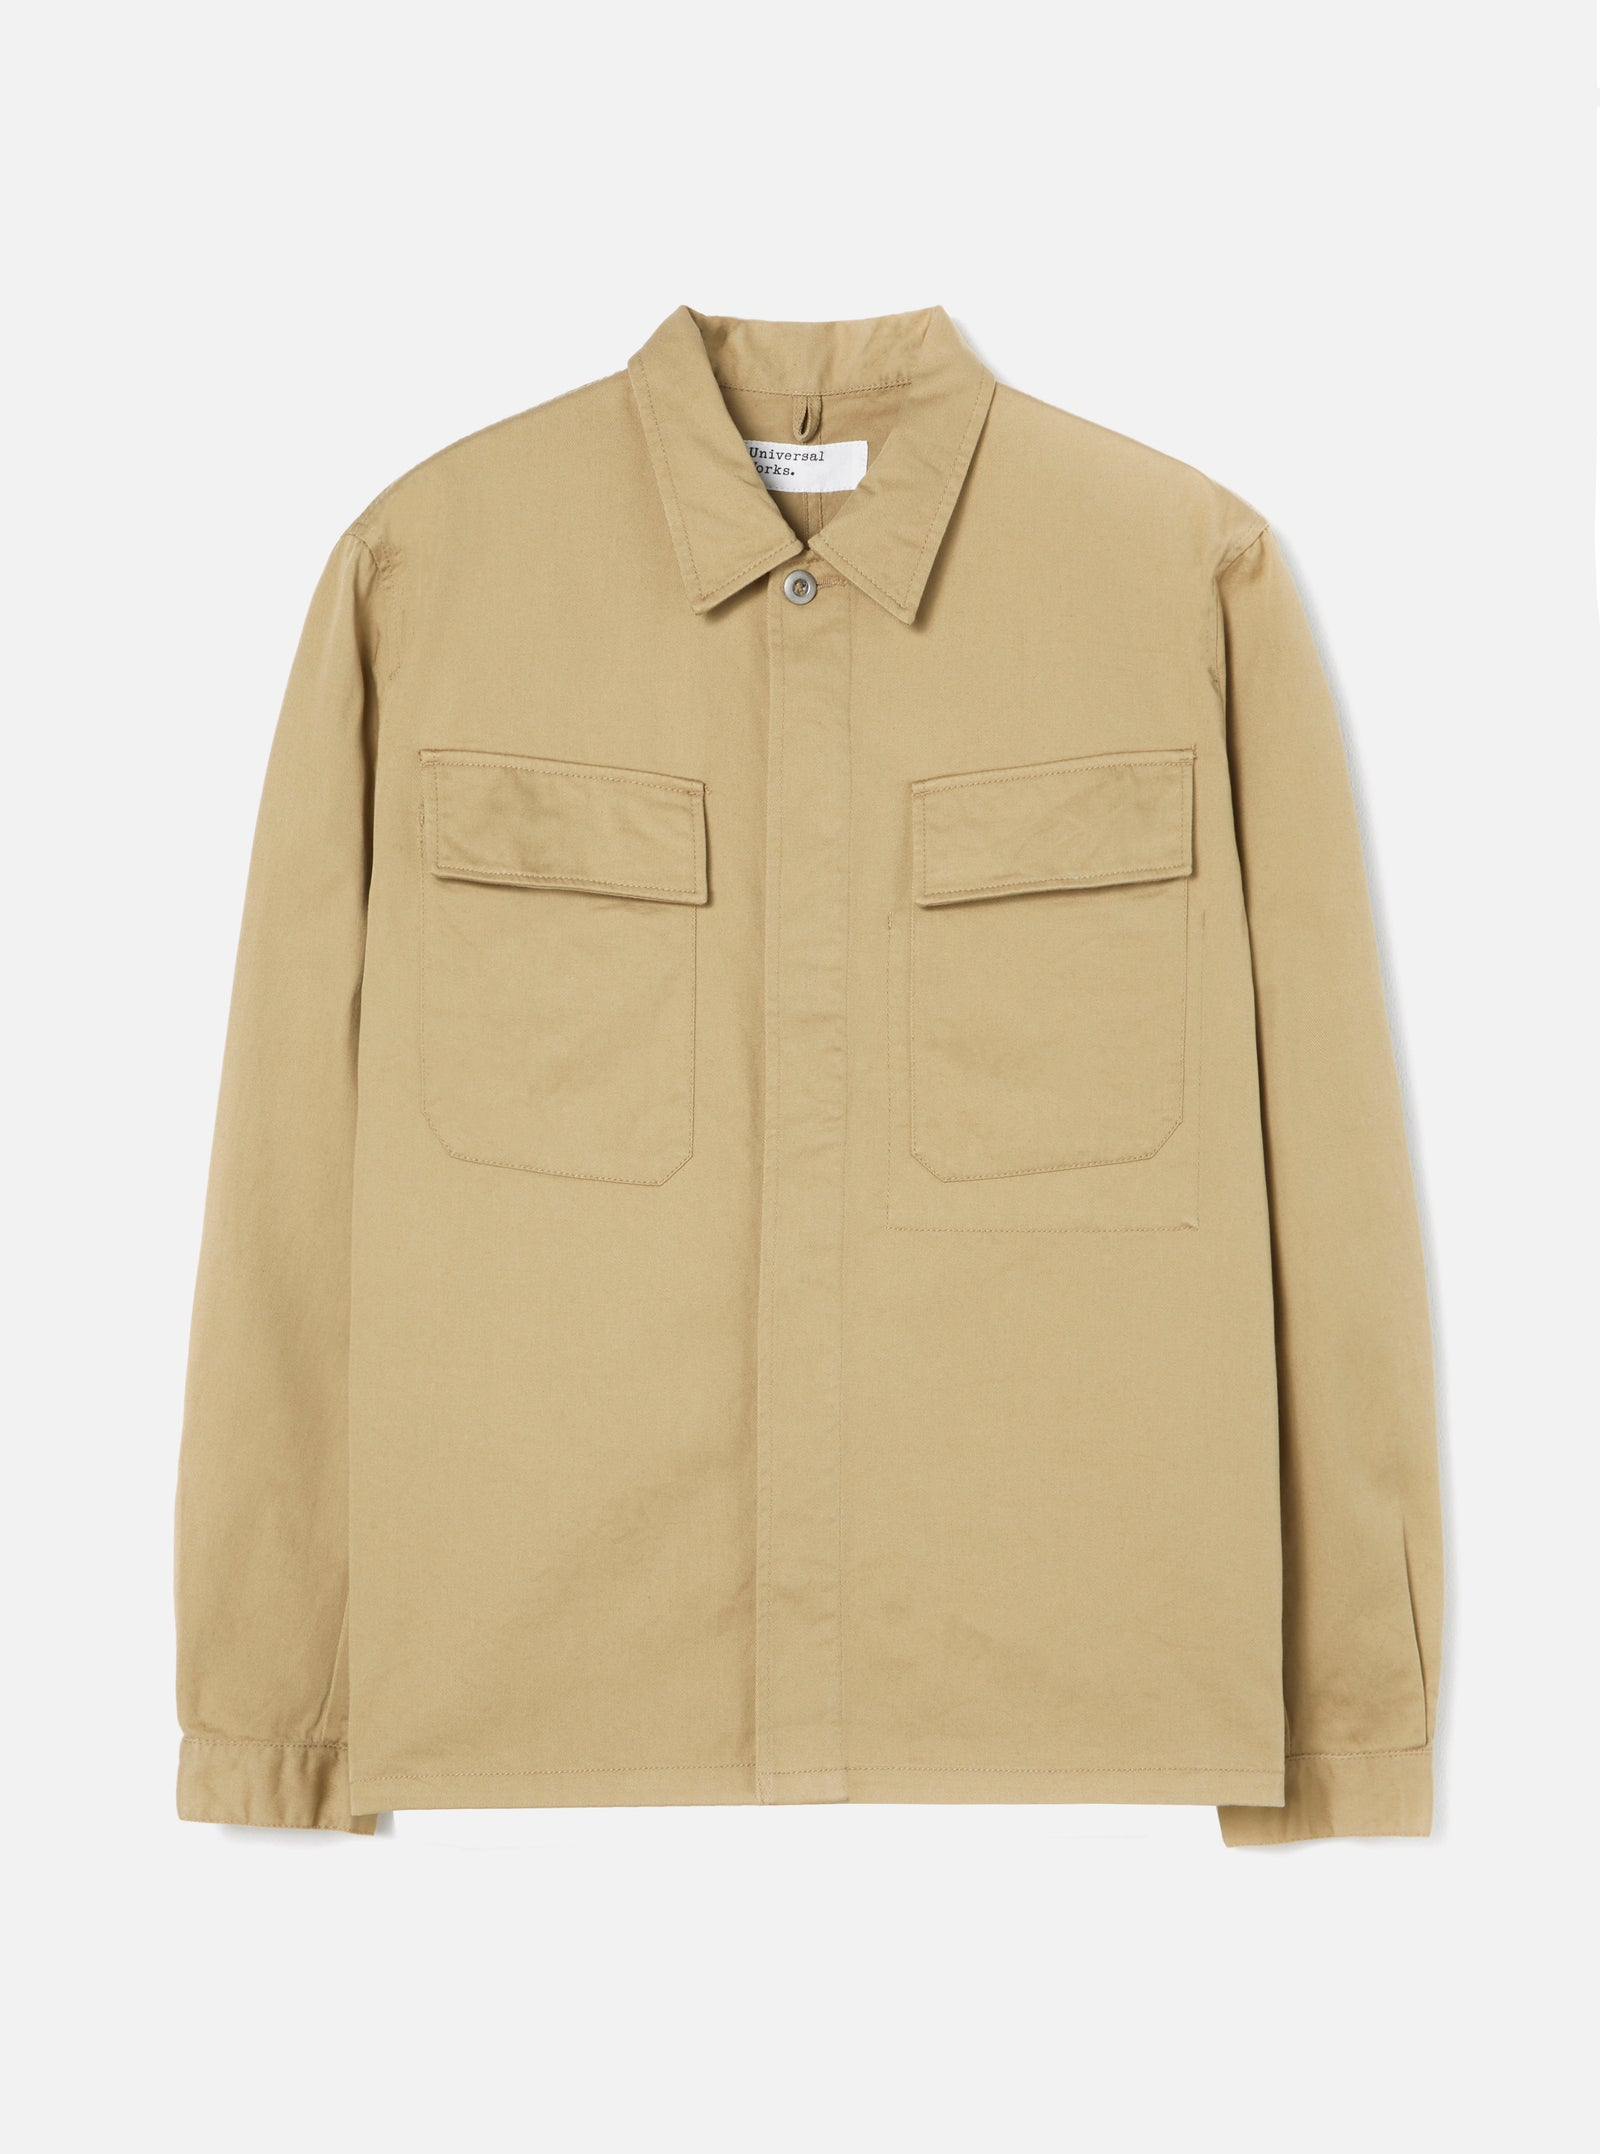 Universal Works MW Chore Overshirt in Sand Twill